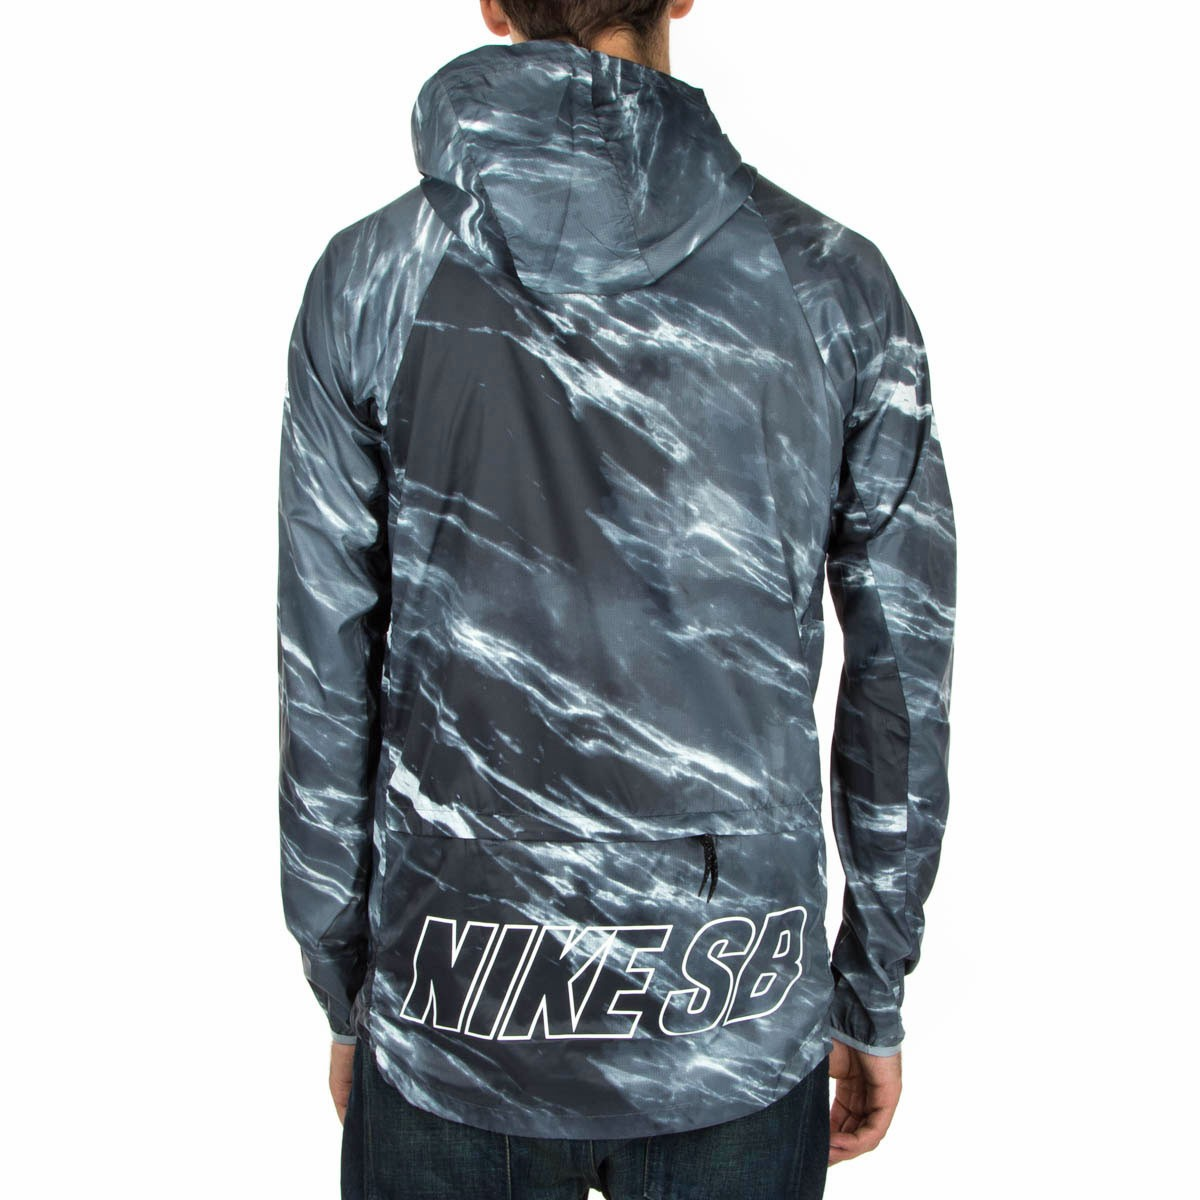 sale usa online 2018 sneakers fresh styles Nike SB Steele Light Weight Marble Jacket - Black/White